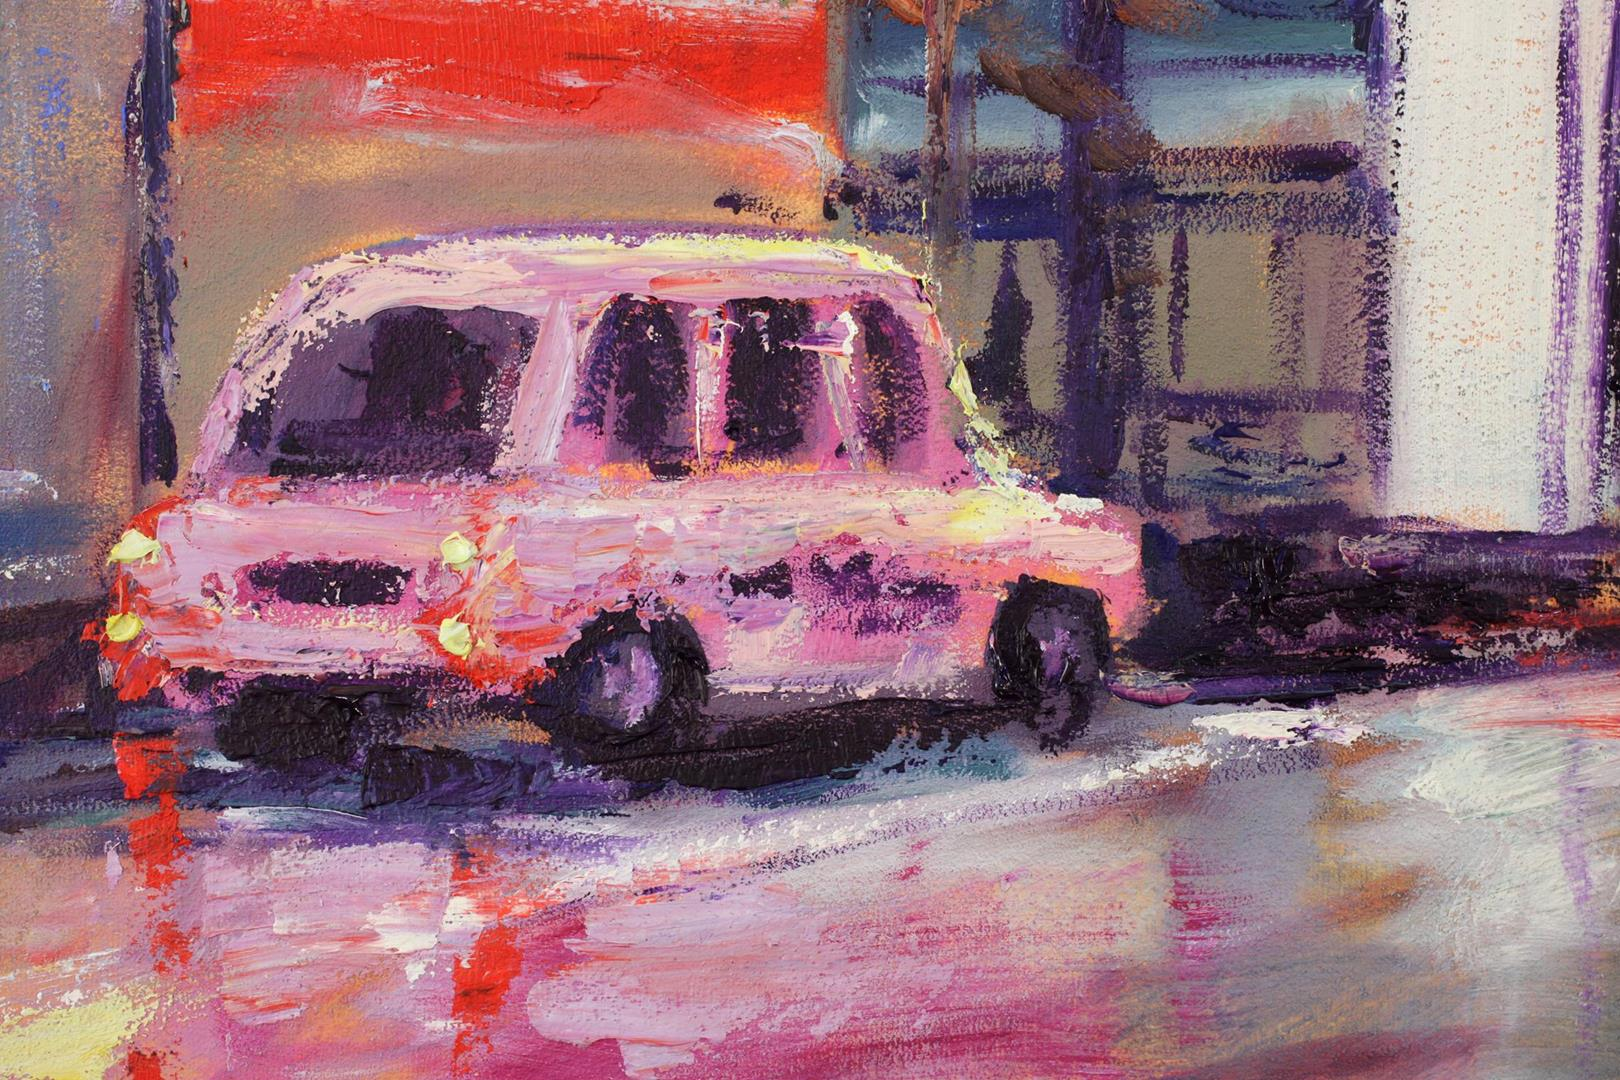 Manchester Night: Pink Taxi